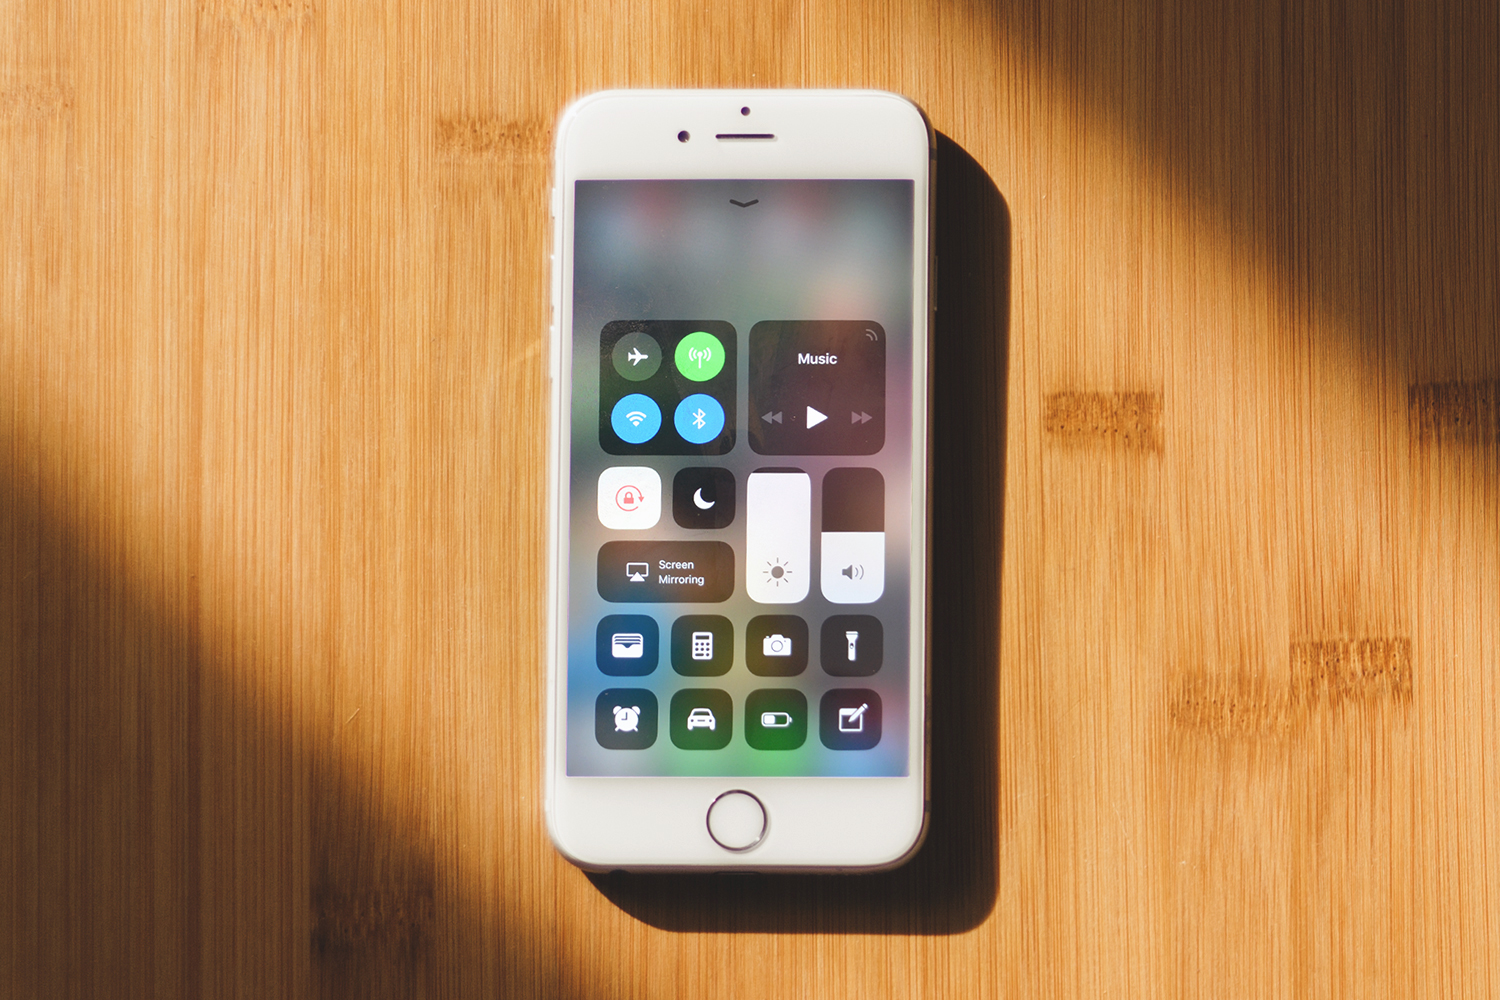 CAN FIND CONTACTS ON IPHONE 6 PLUS IOS 12